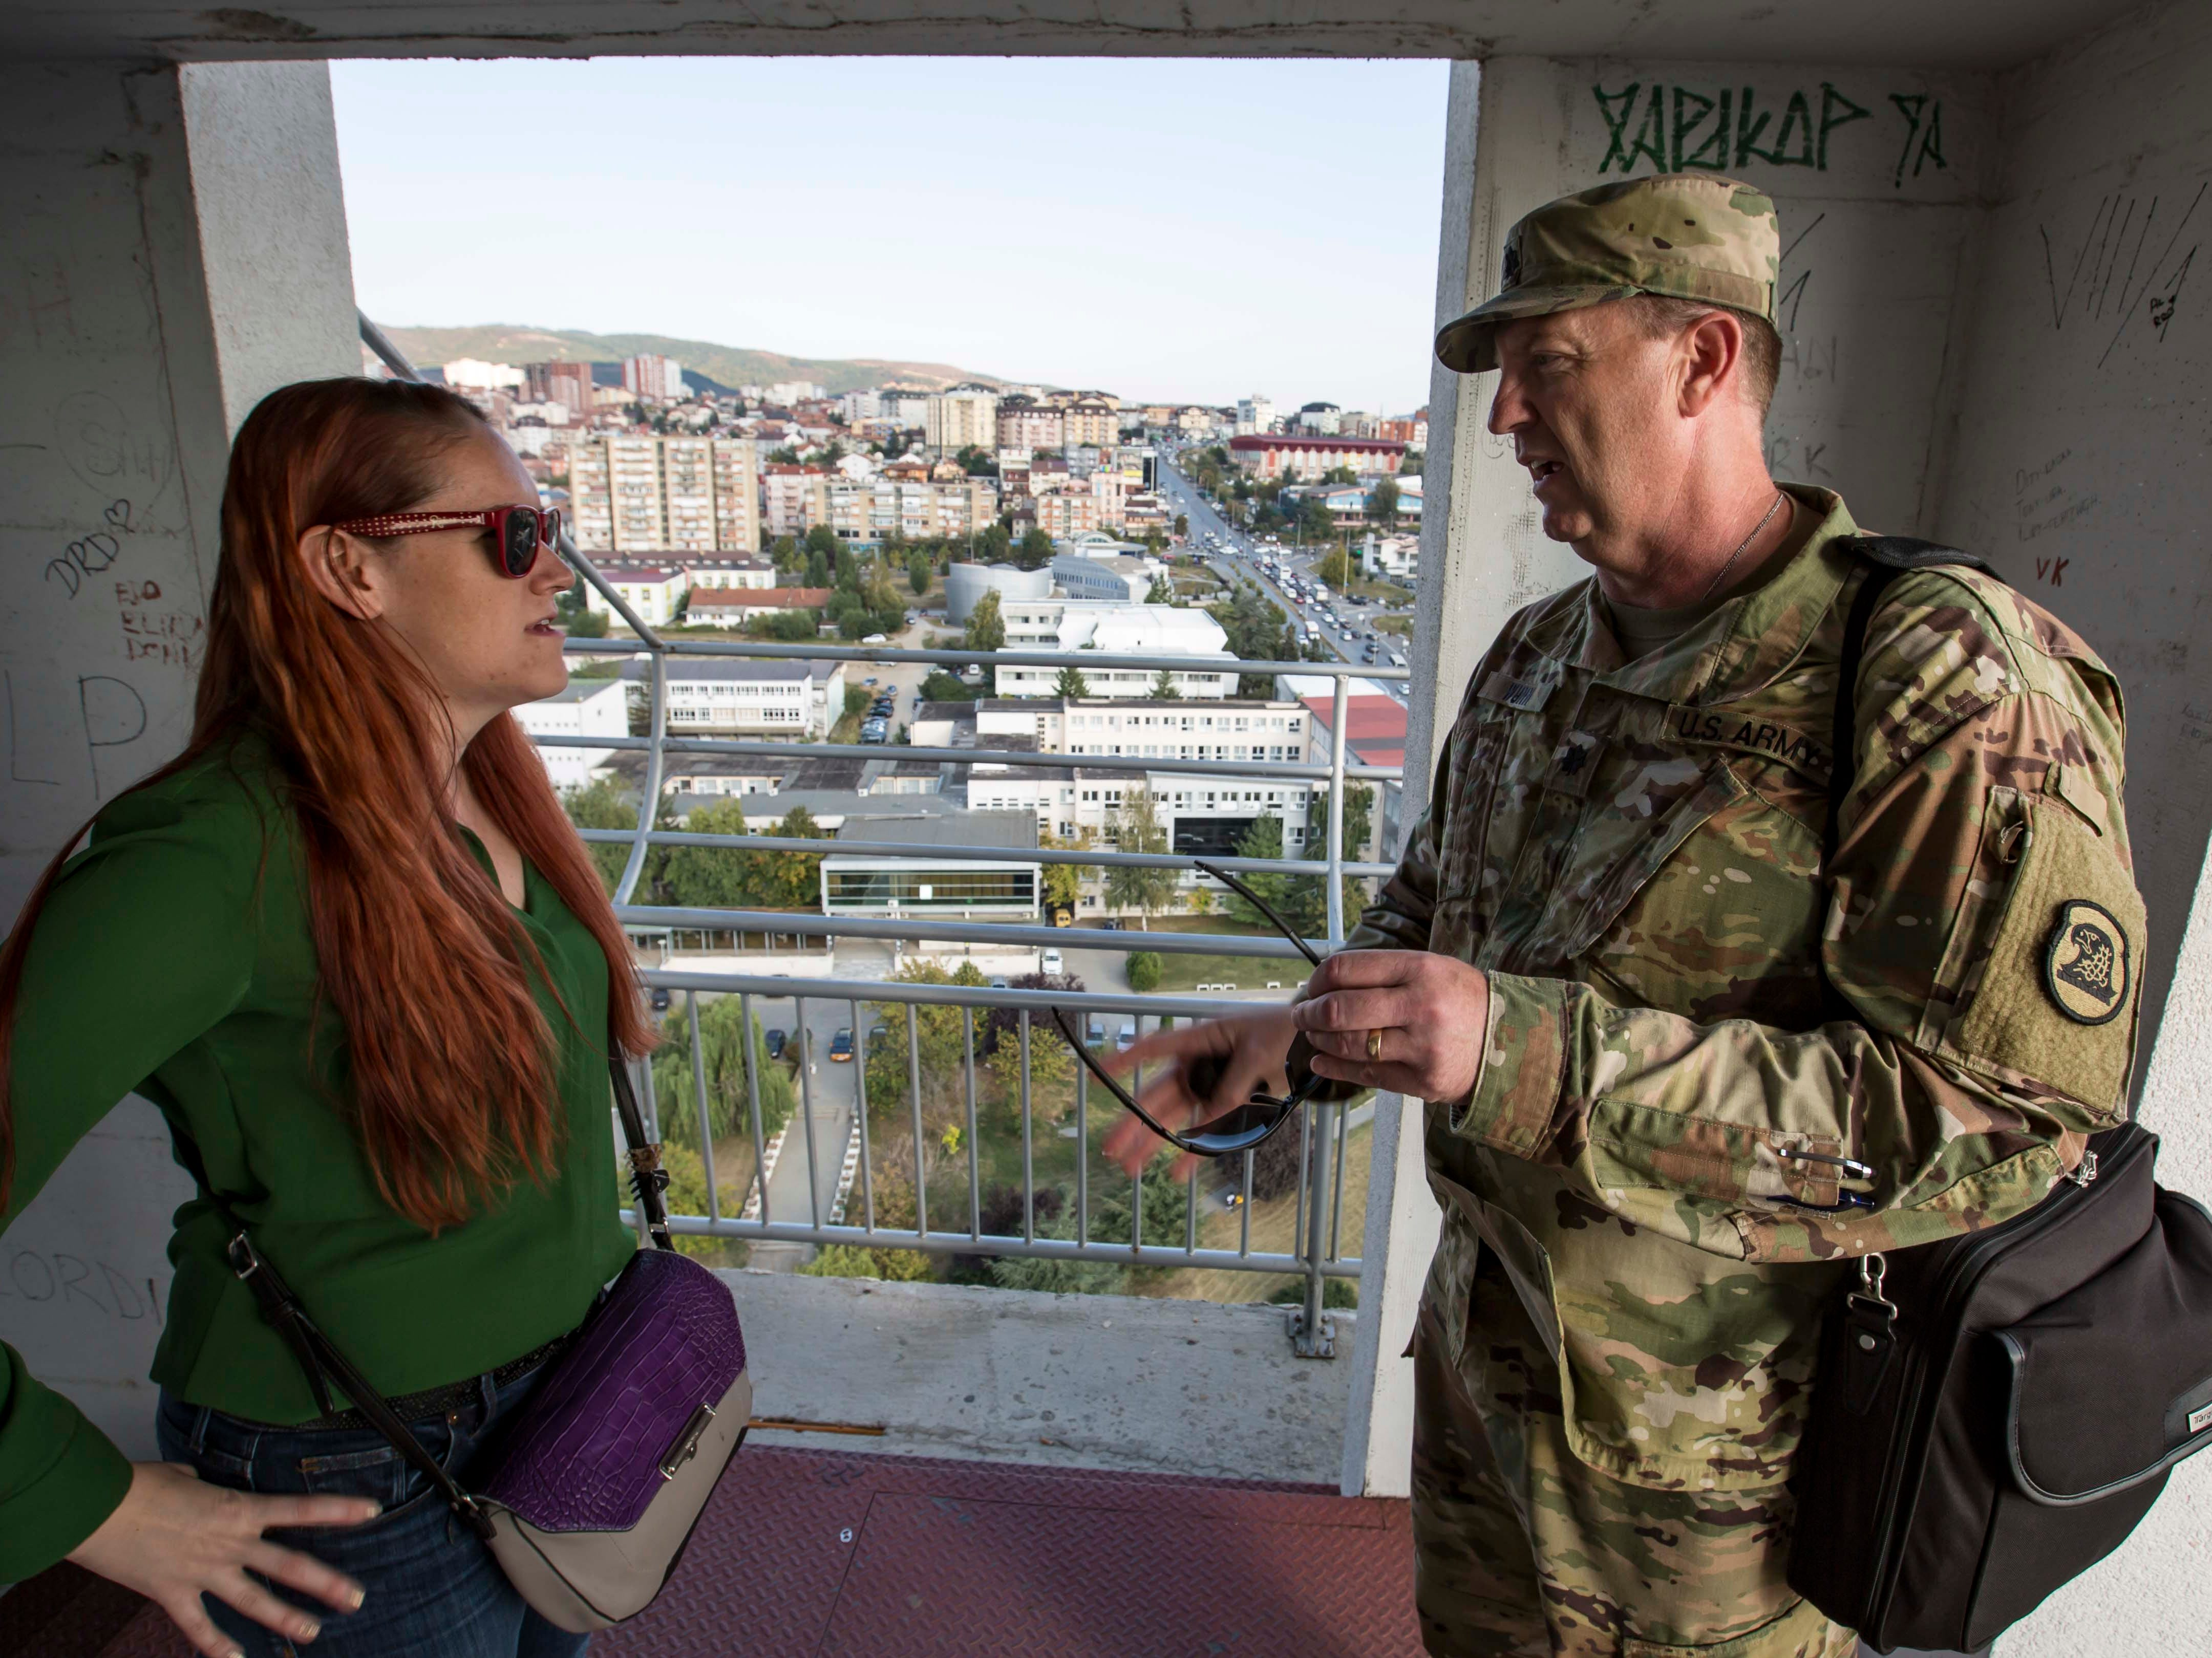 Iowa Columnist Courtney Crowder speaks with Lt. Col. Michael Wunn in the bell tower of the Cathedral of Saint Mother Teresa in Sept. 2018, in Kosovo.